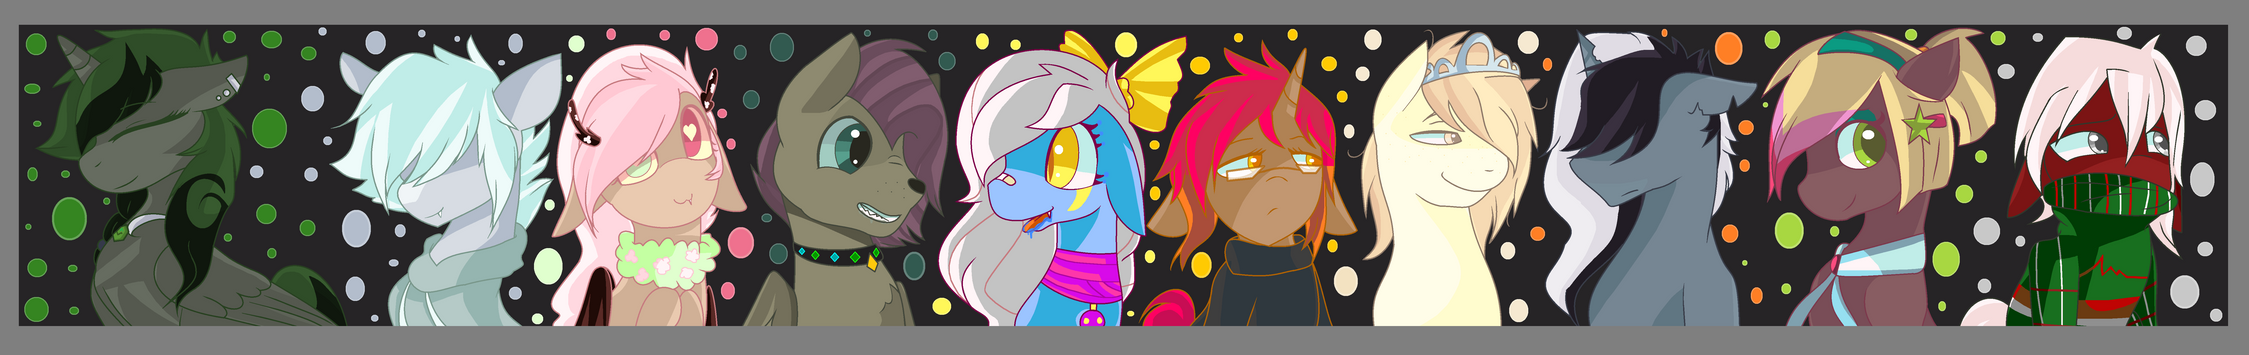 Princess Catastrophe and her subjects by xxSactaviaxx